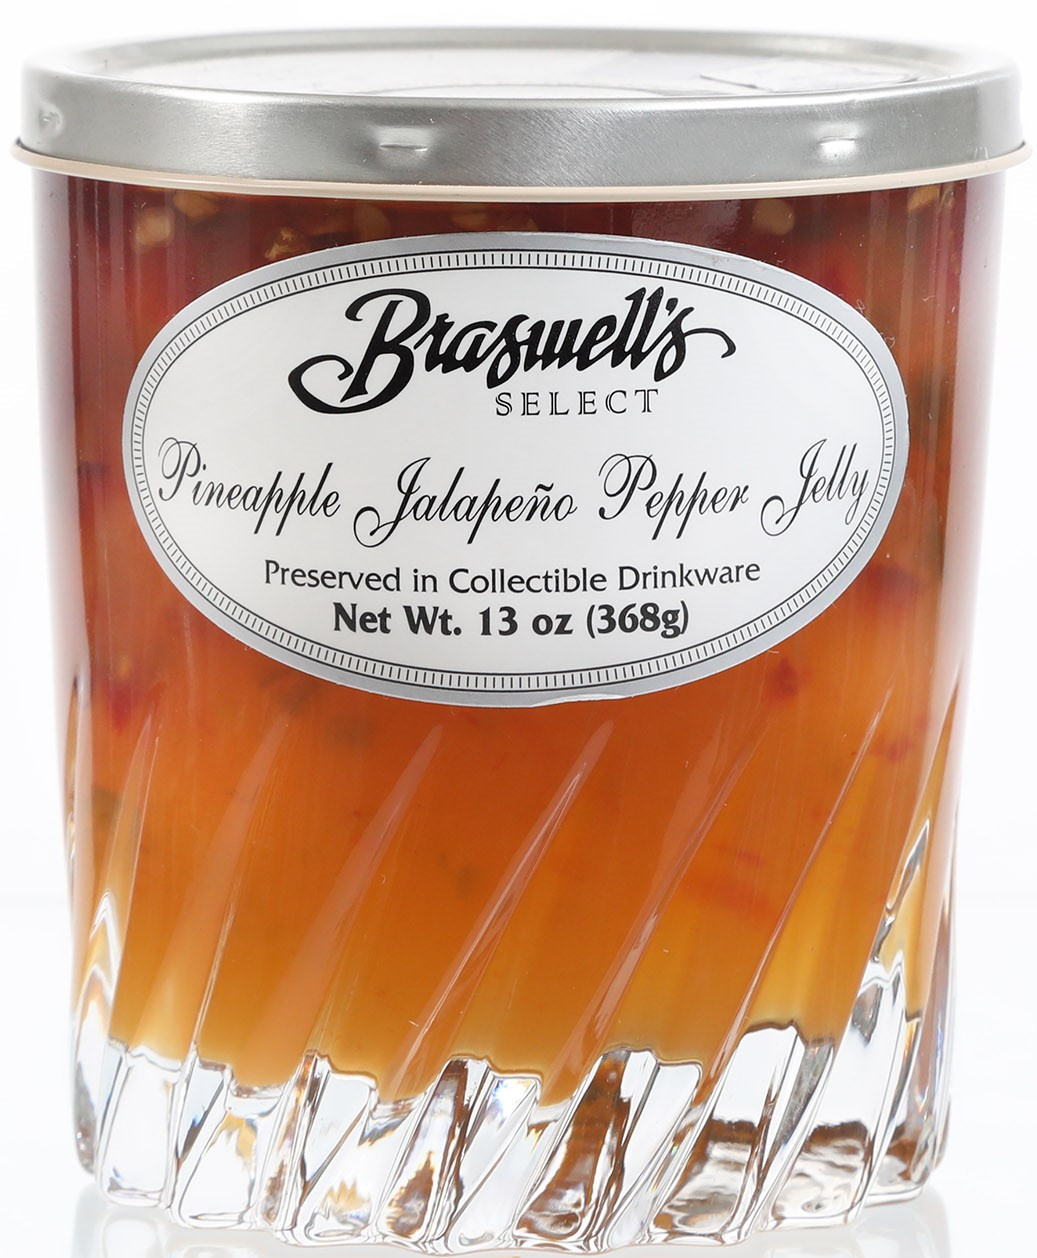 Braswell's Select Pineapple Jalapeno Pepper Jelly